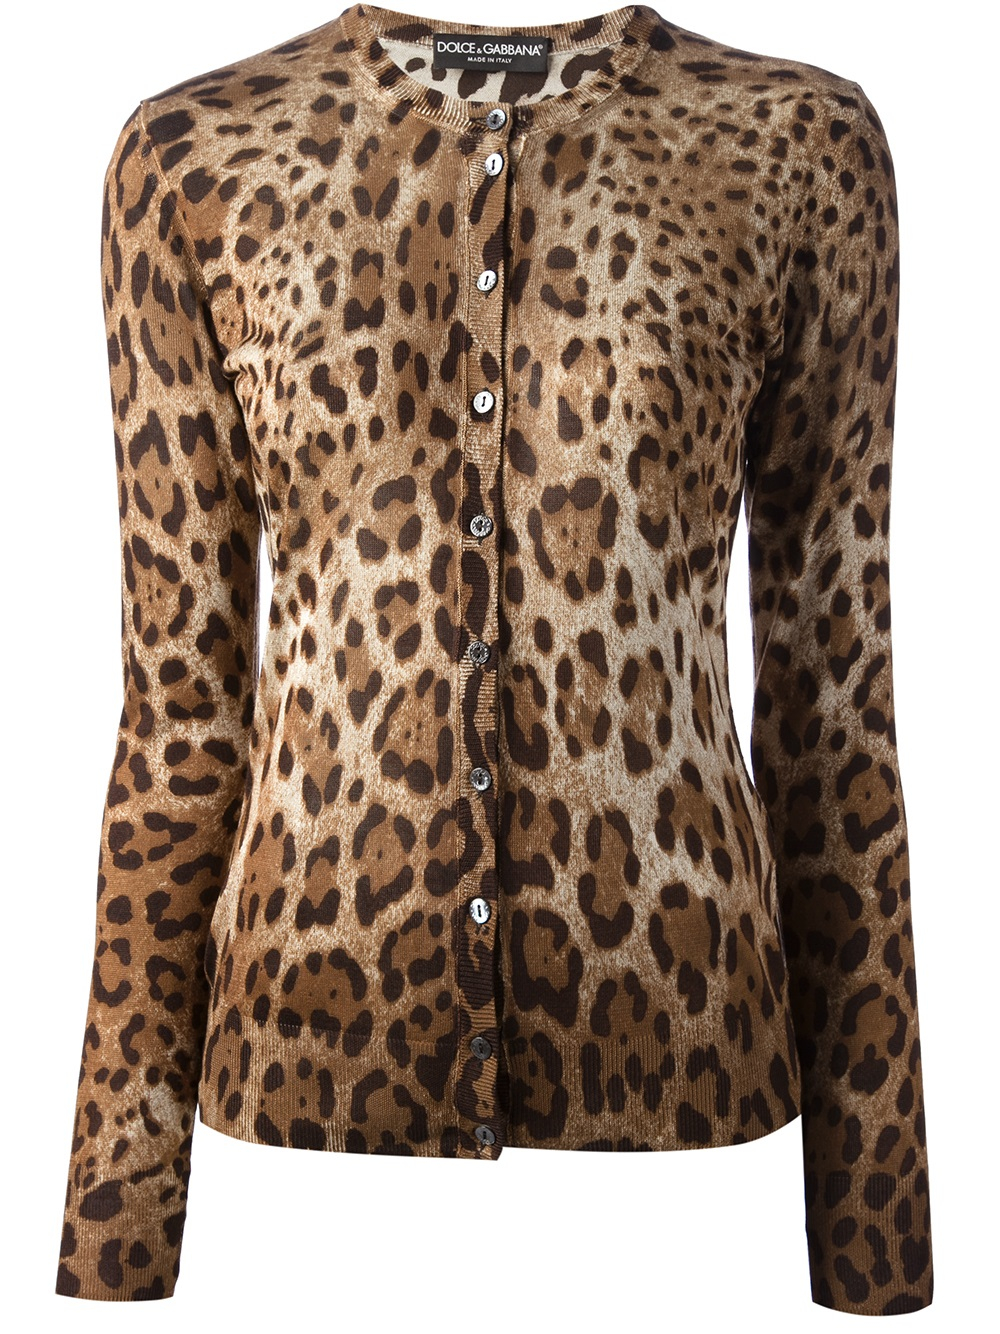 Our Leopard Print Short Sleeve Sweater is the perfect piece to add to your closet. 40% OFF* YOUR PURCHASE USE CODE: HELLOFALL DETAILS. Free Shipping on $ or more & $ Flat-Rate Shipping & Handling. Please log out of your account to ship .